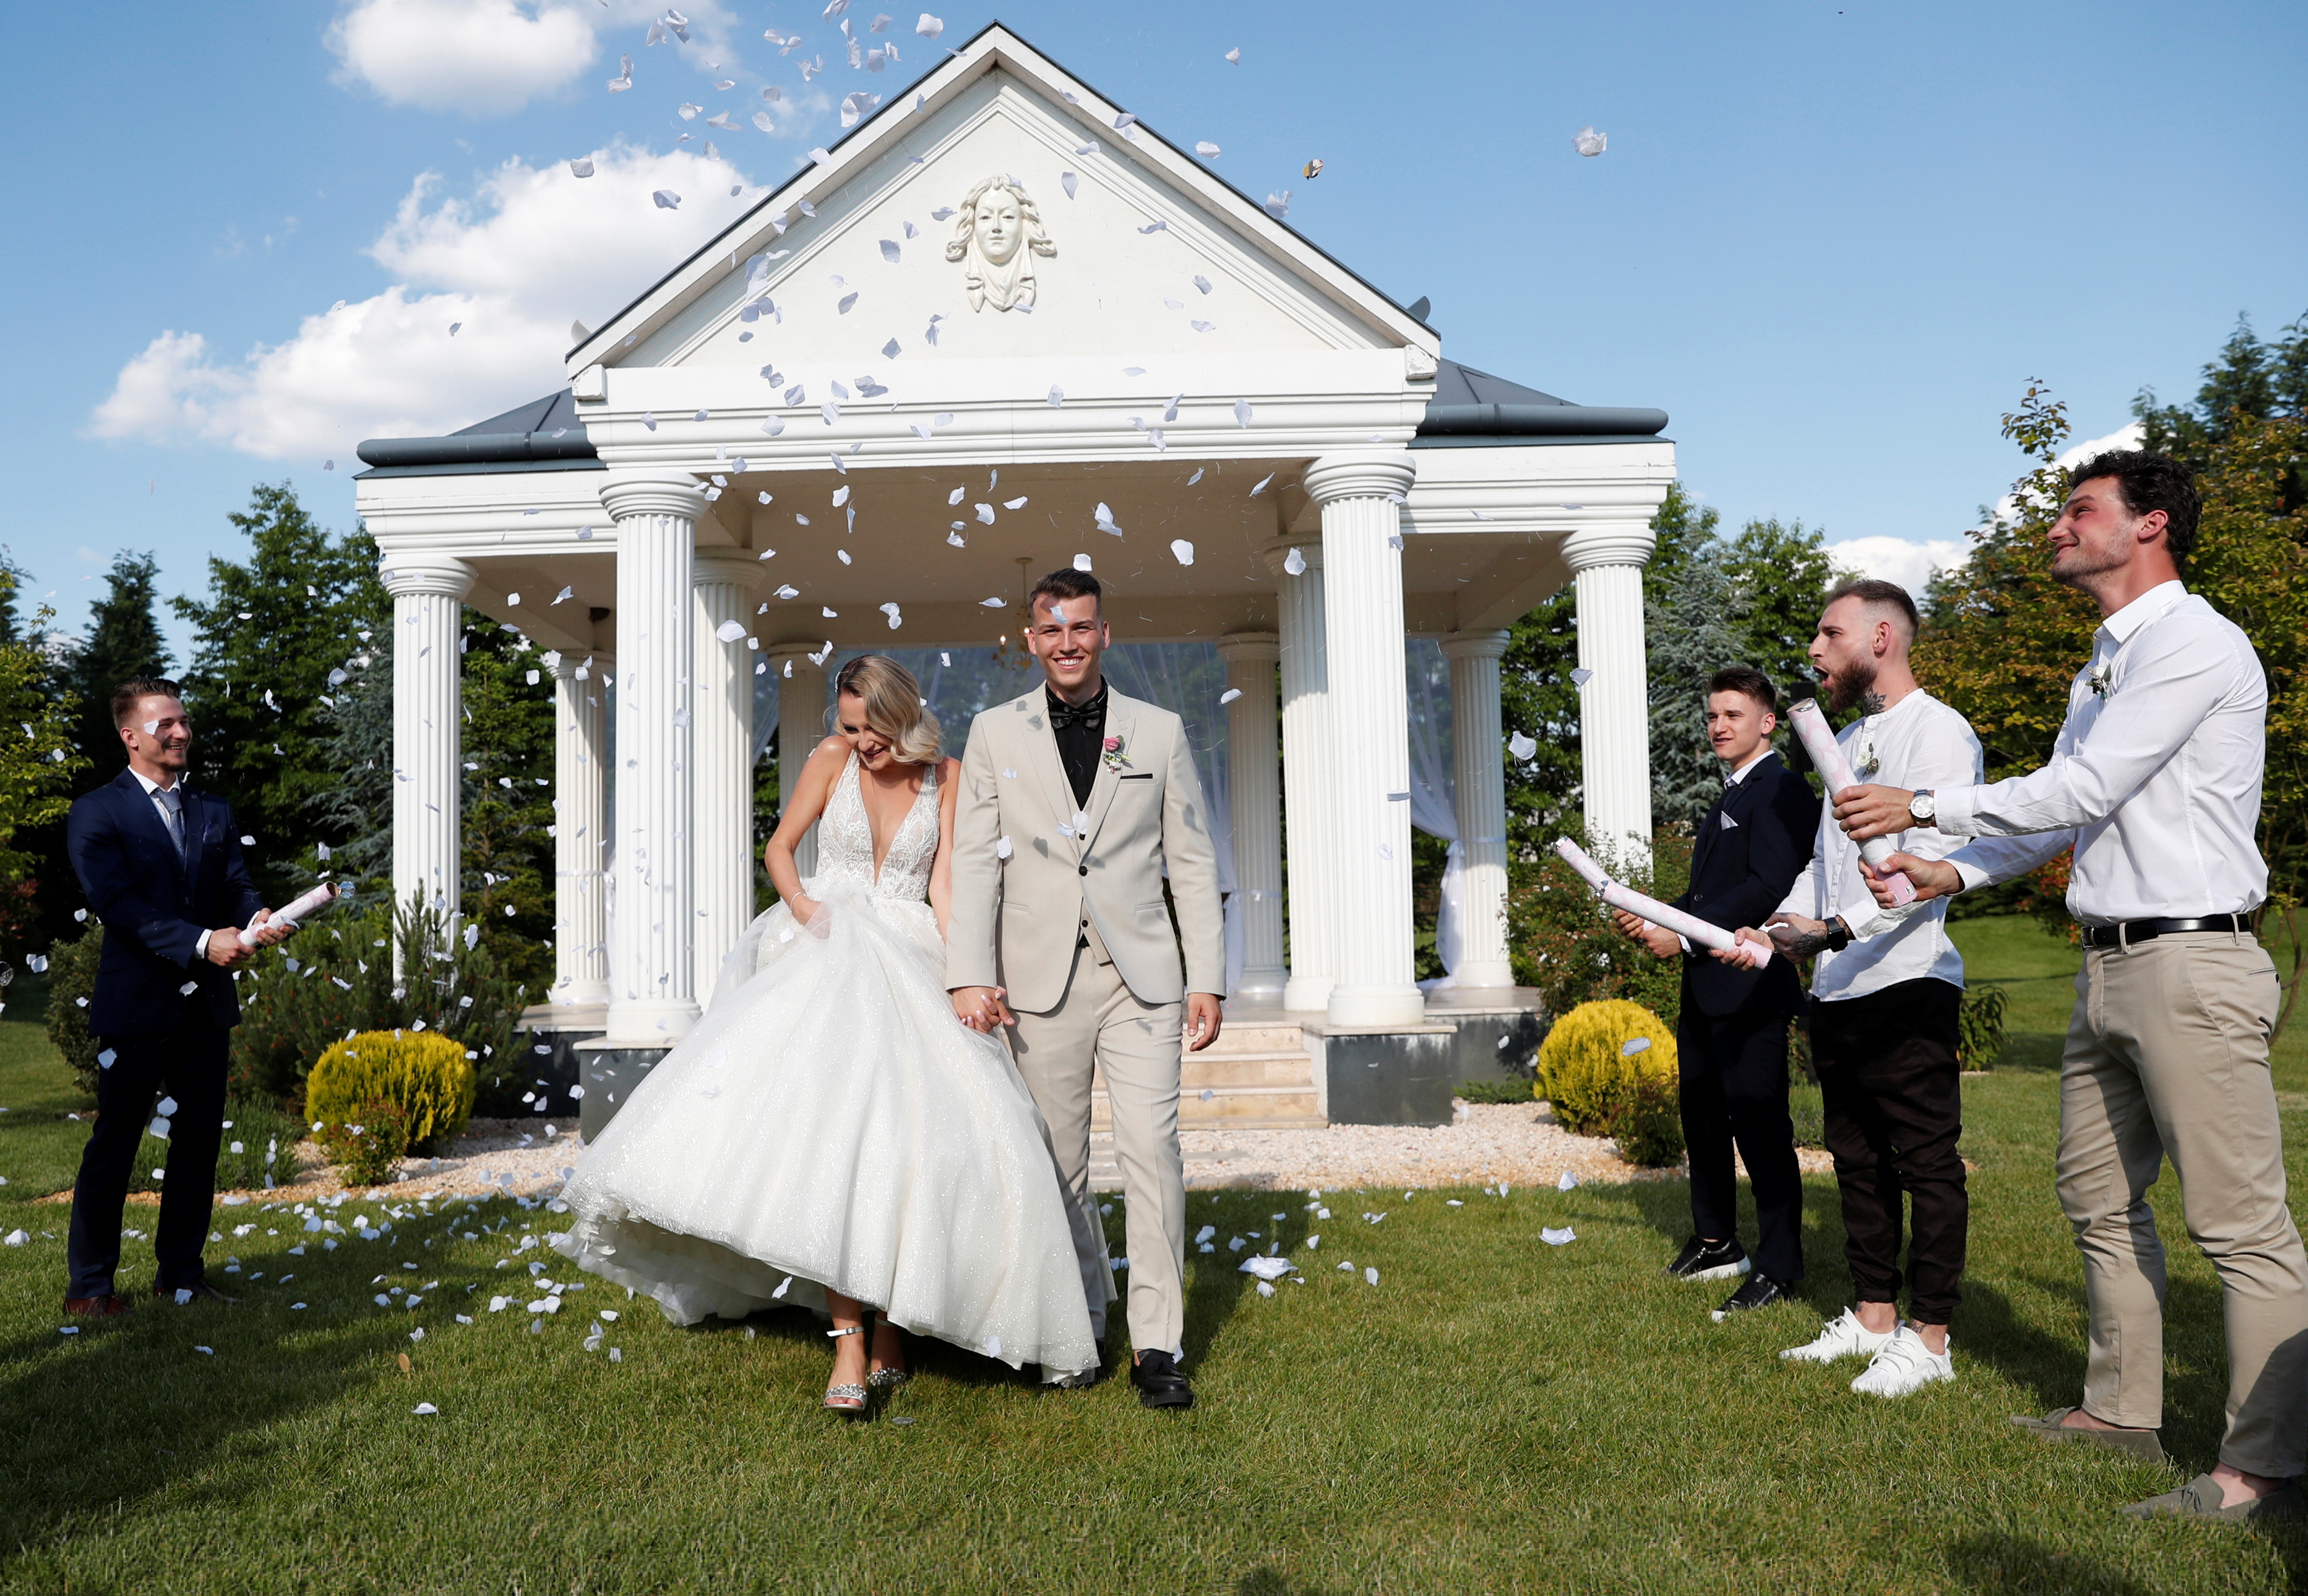 As Hungary lifts restrictions, couples can wed at last